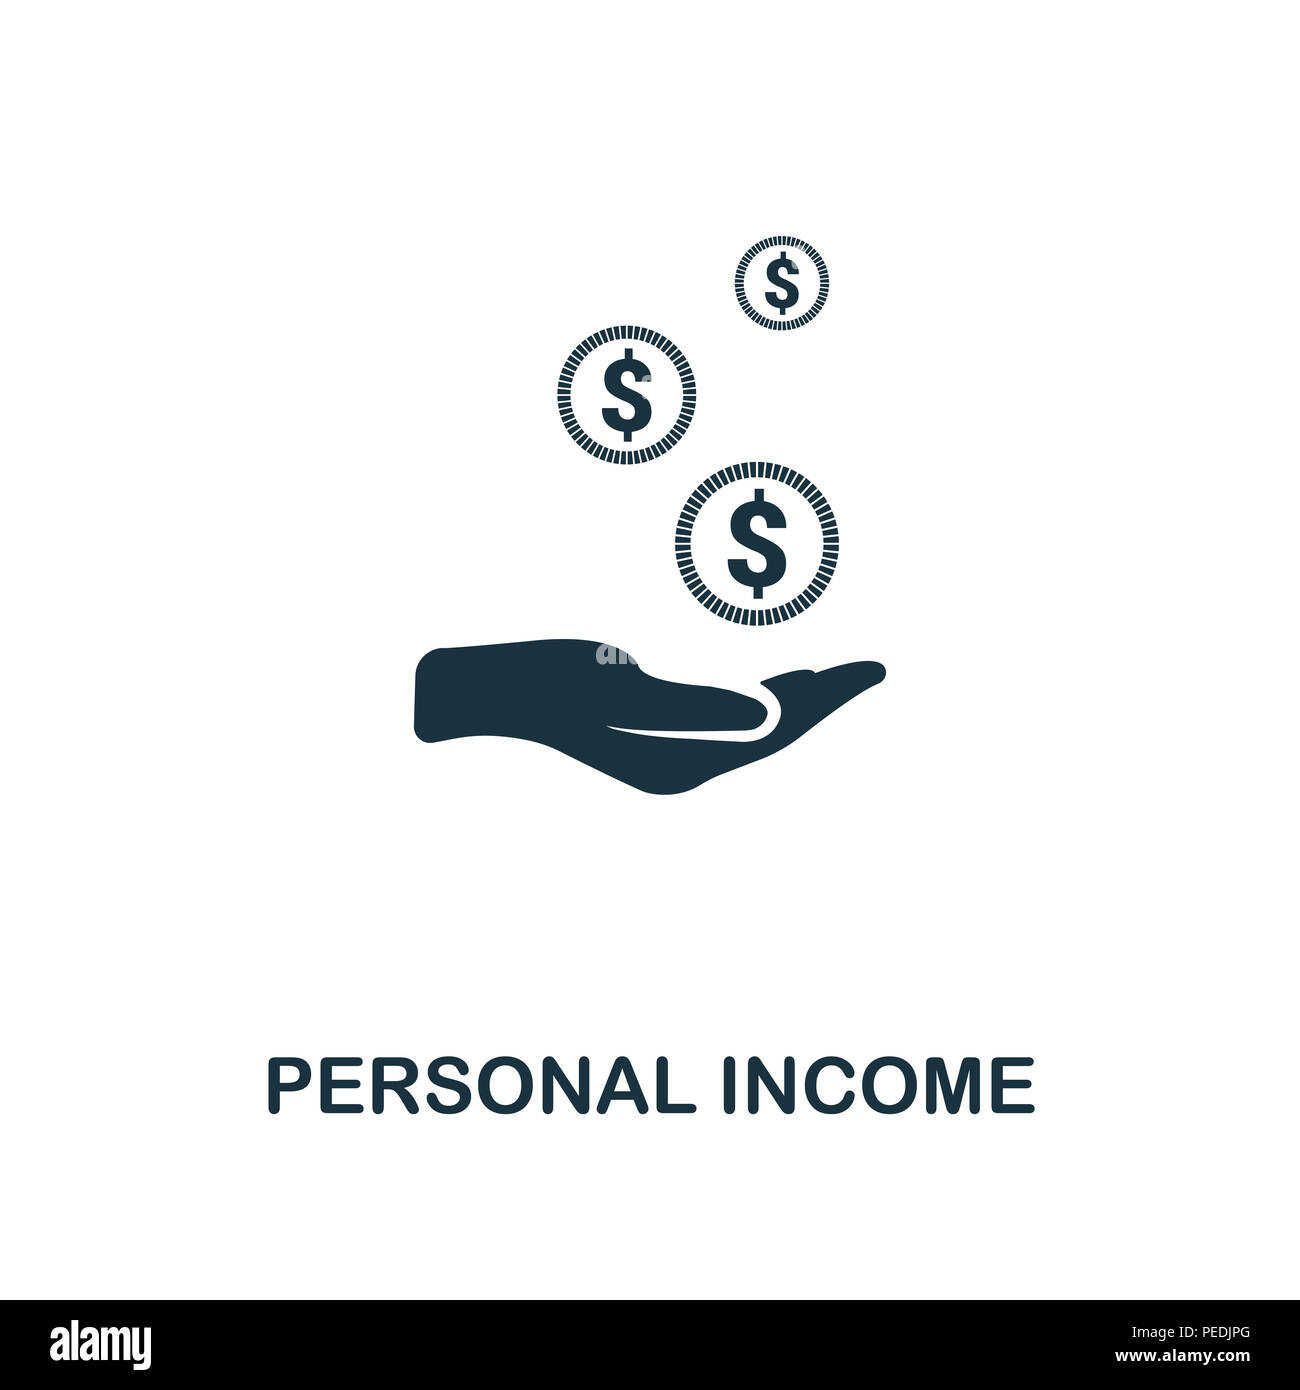 personal income creative icon simple element illustration personal